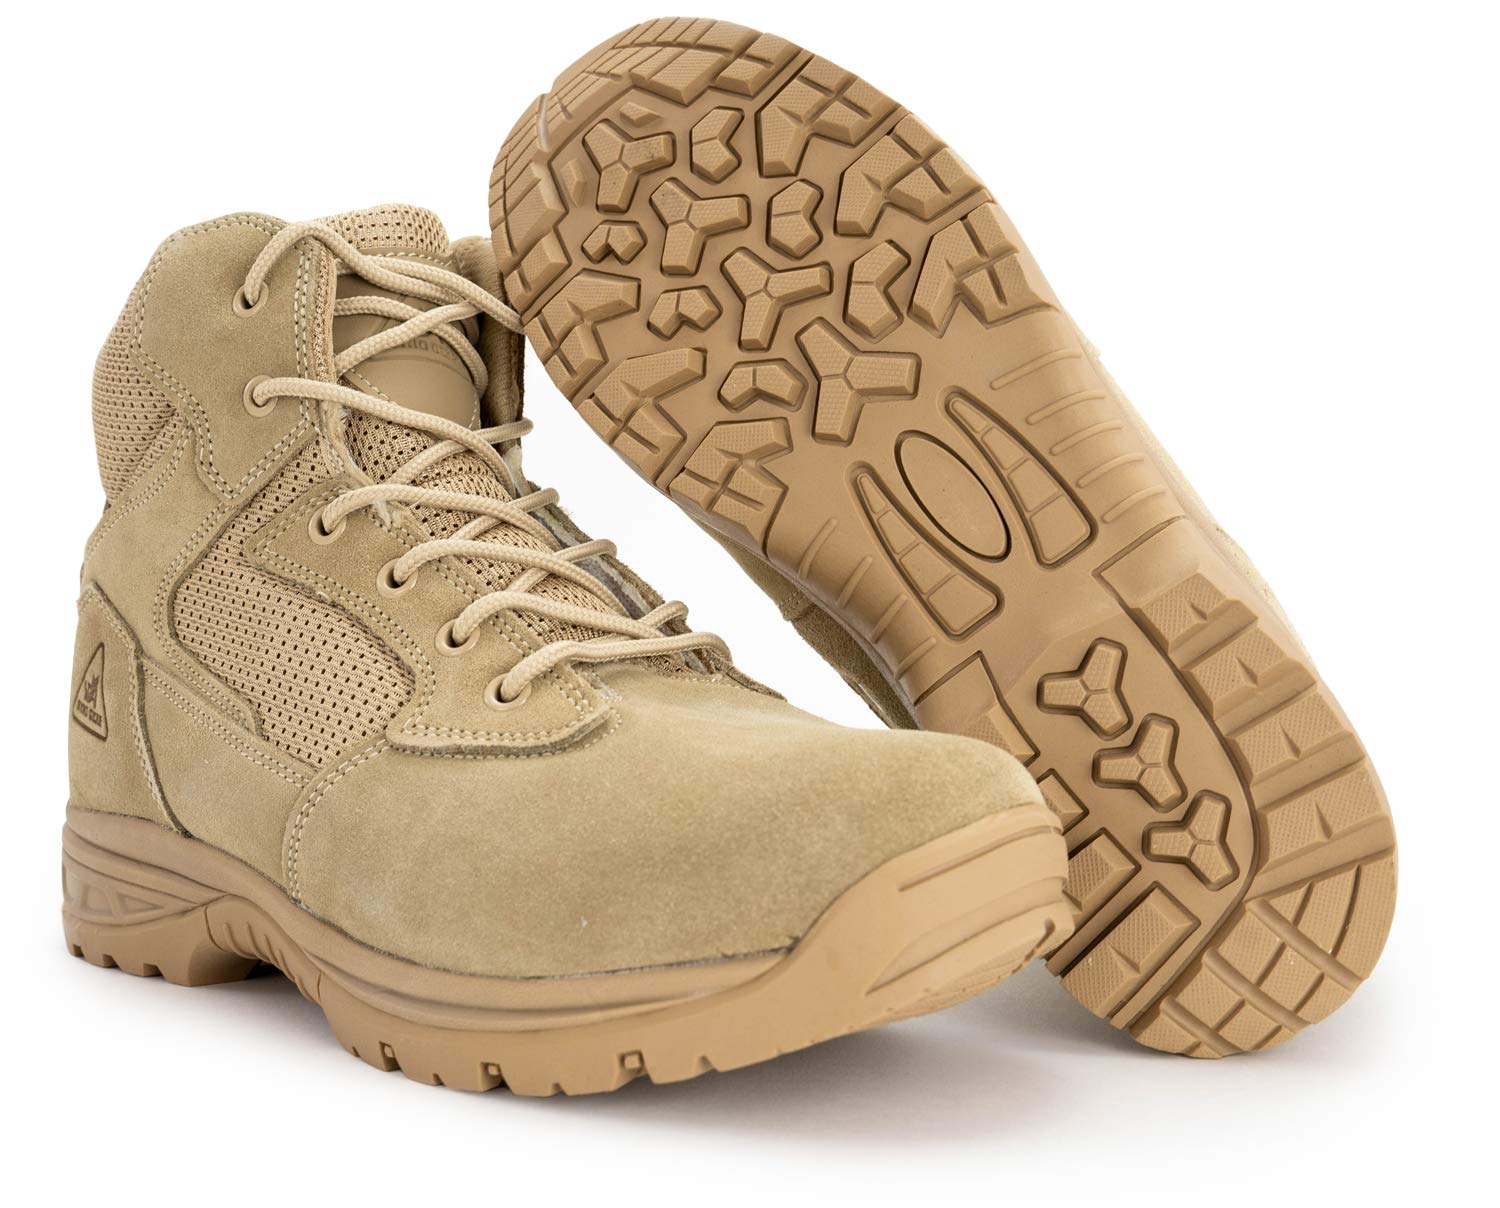 6'' Ryno Gear Tactical Combat Boots (Beige) (9) Wide